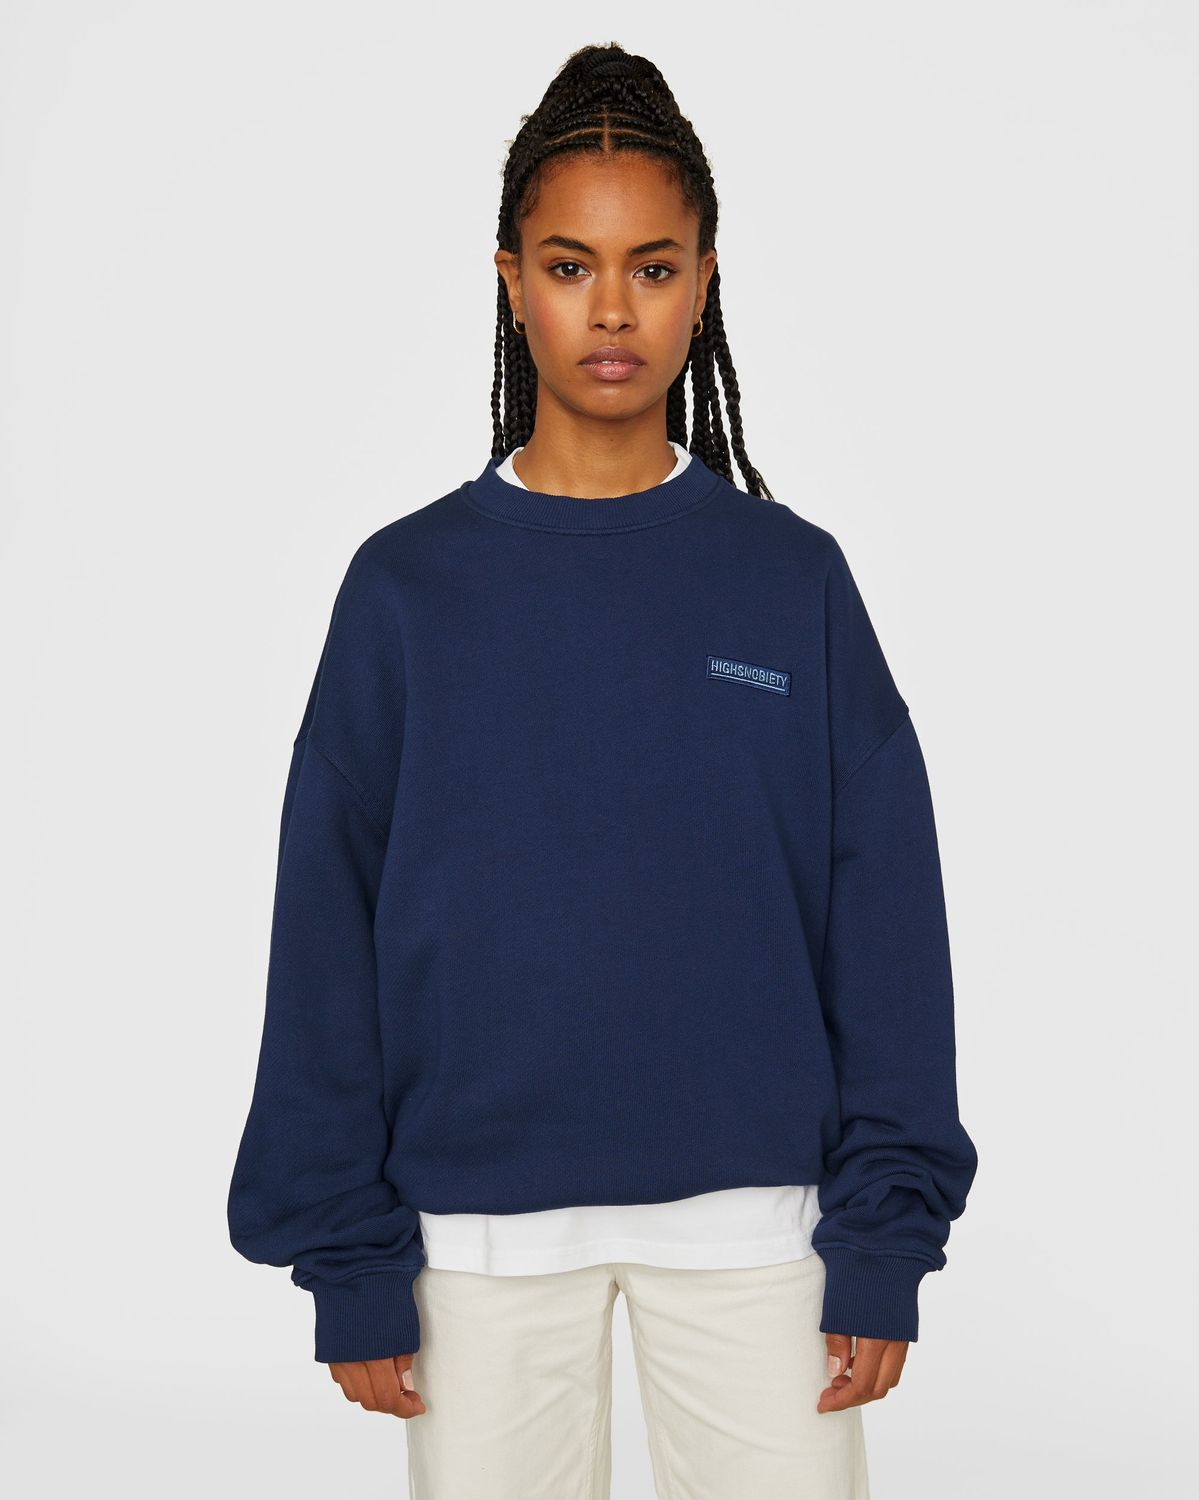 Highsnobiety Staples — Sweatshirt Navy - Image 6